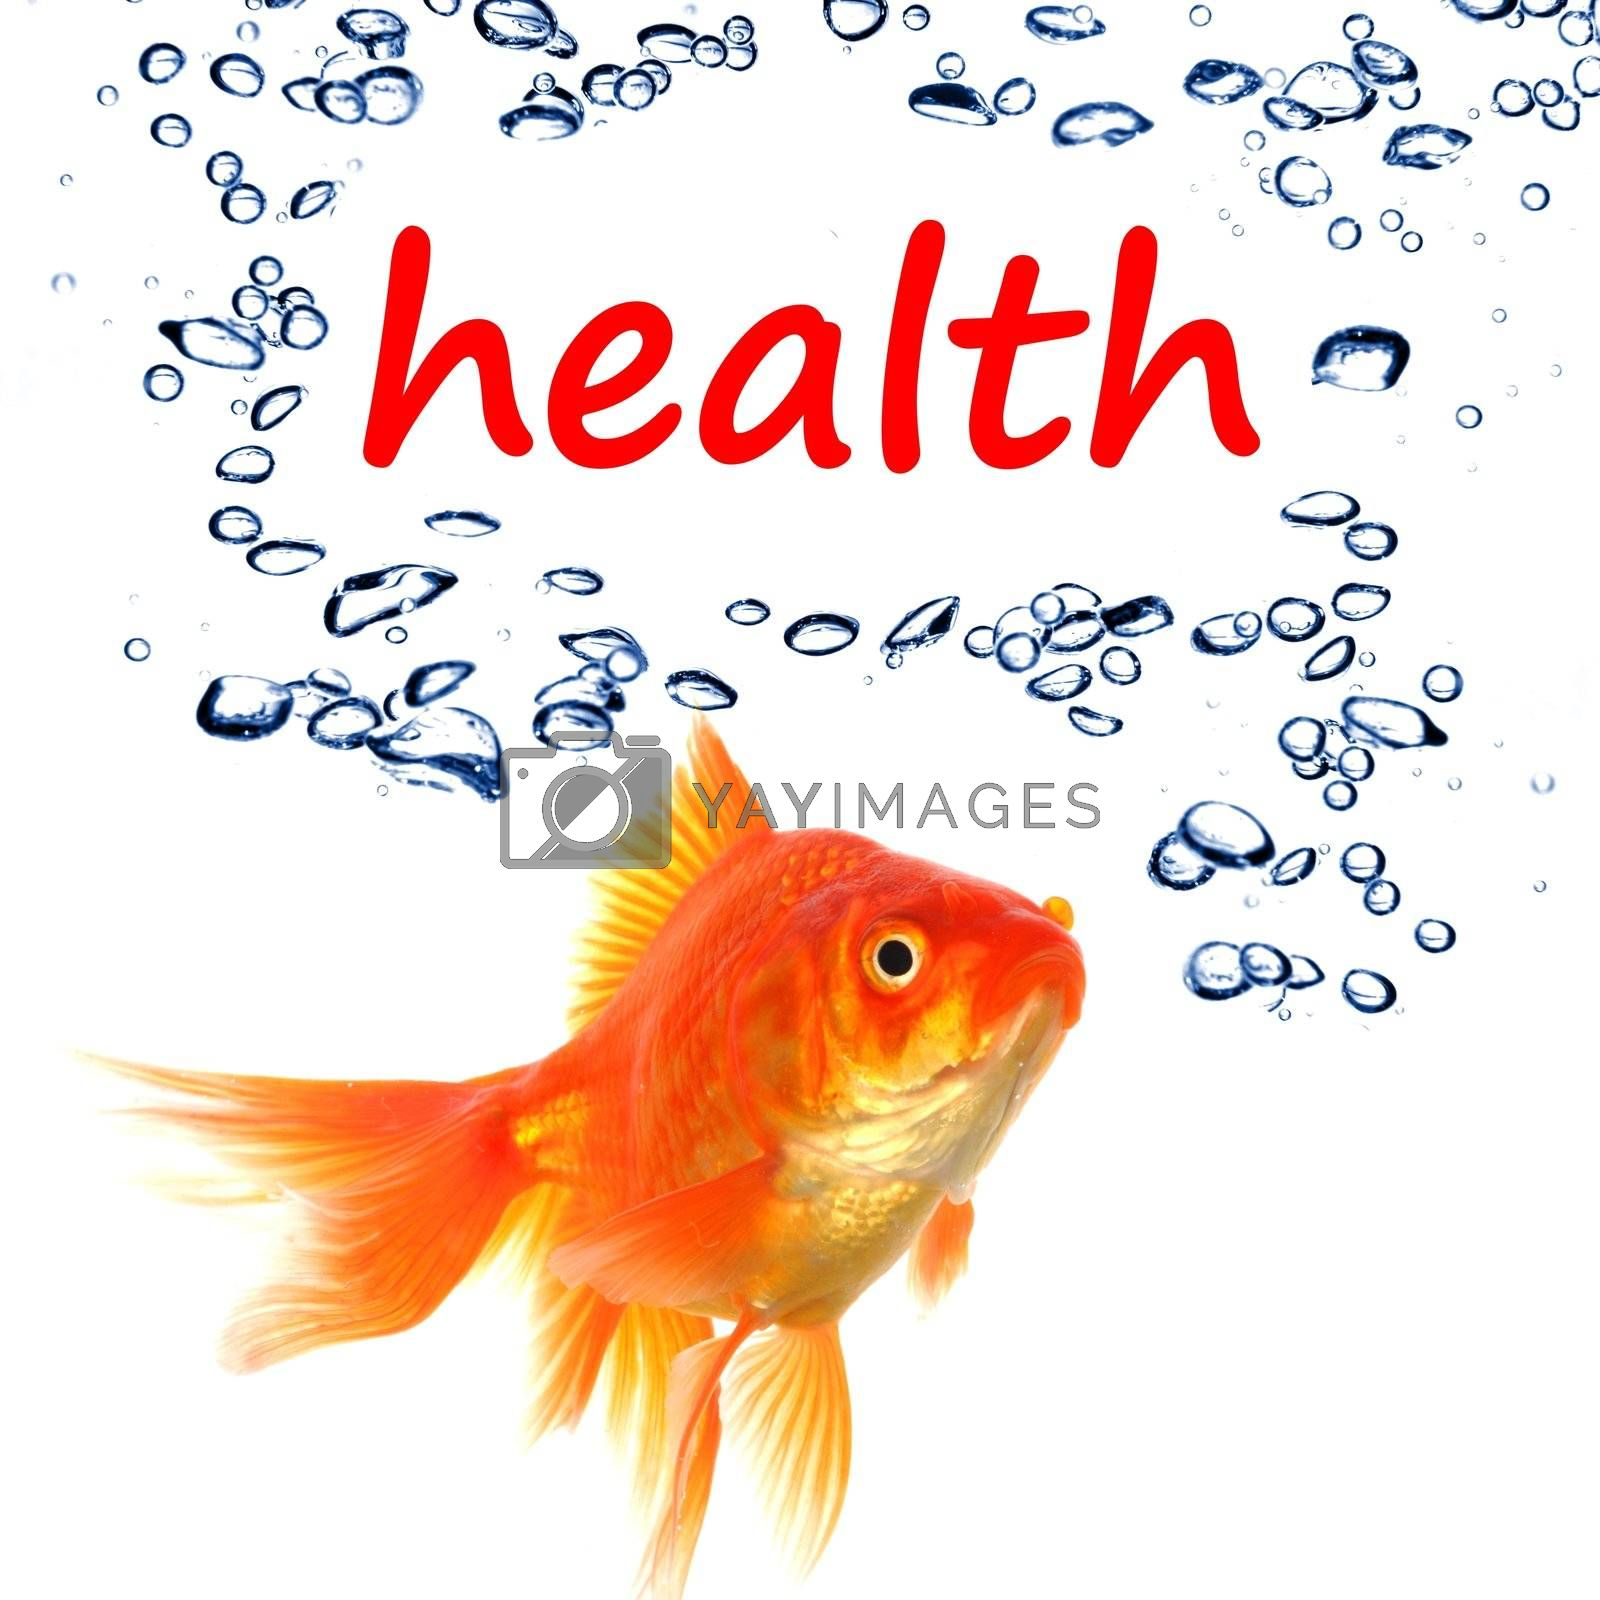 word health and goldfish showing spa or healthy lifestyle concept